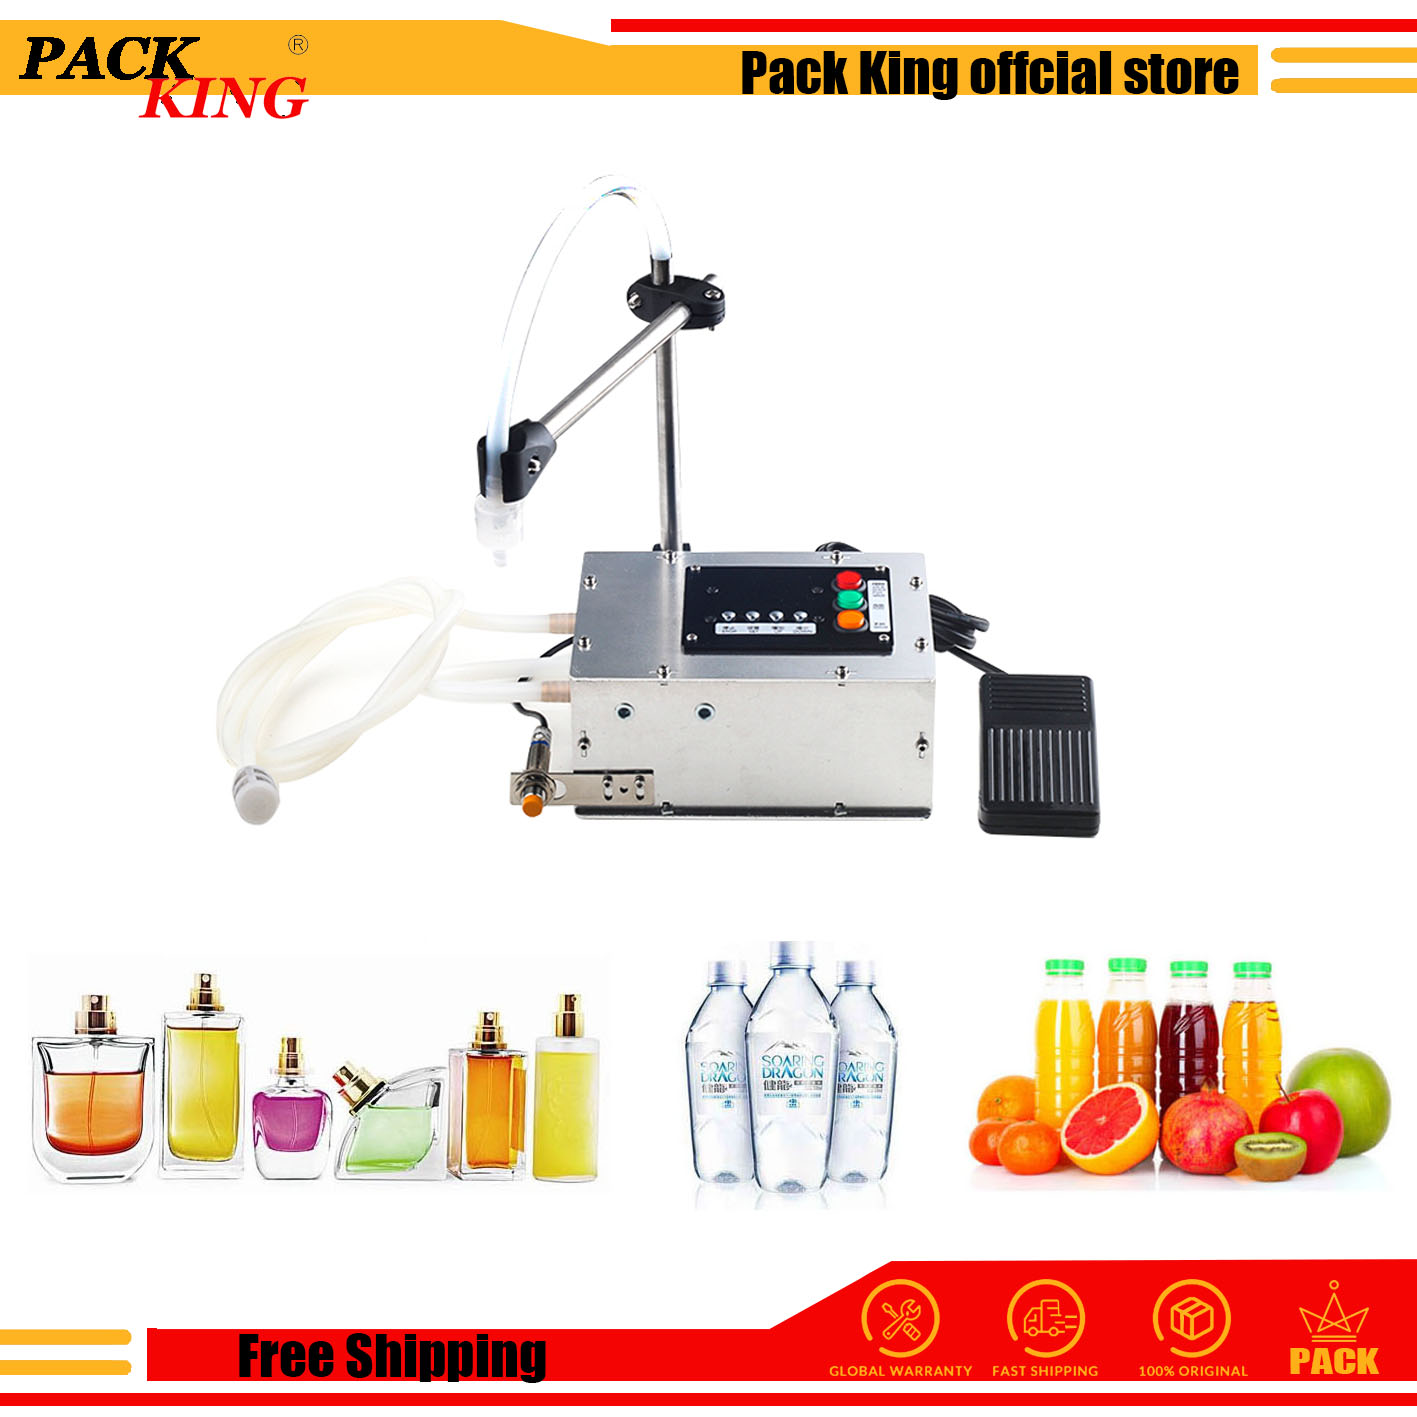 Liquid Filling Machine Water Juice Drinking Food Grade Stainless Steel Household With High Temperature Resistance Free Shipping